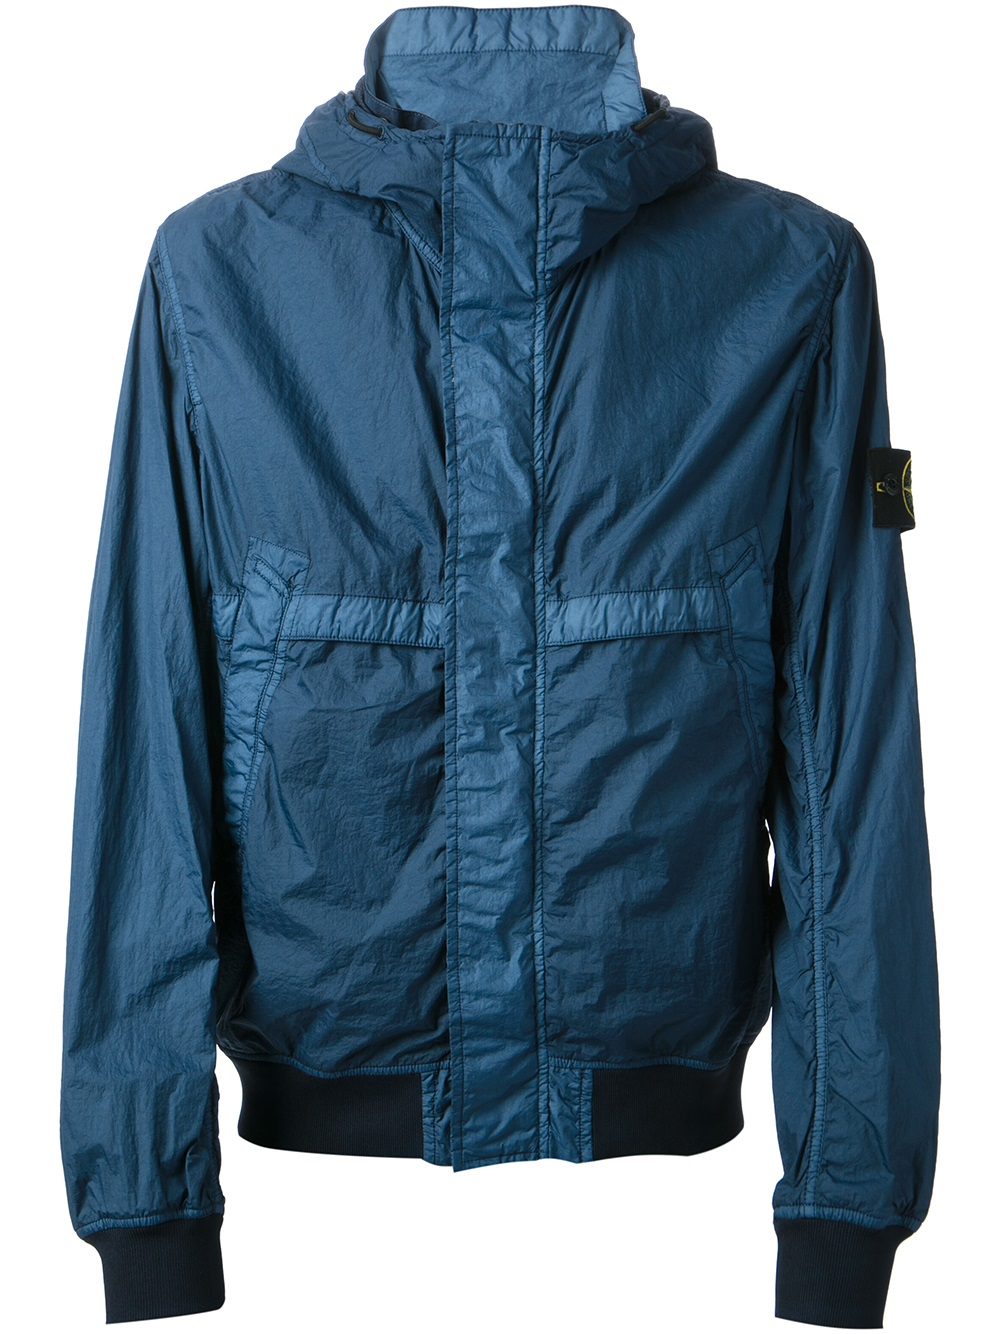 stone island hooded windbreaker in blue for men lyst. Black Bedroom Furniture Sets. Home Design Ideas